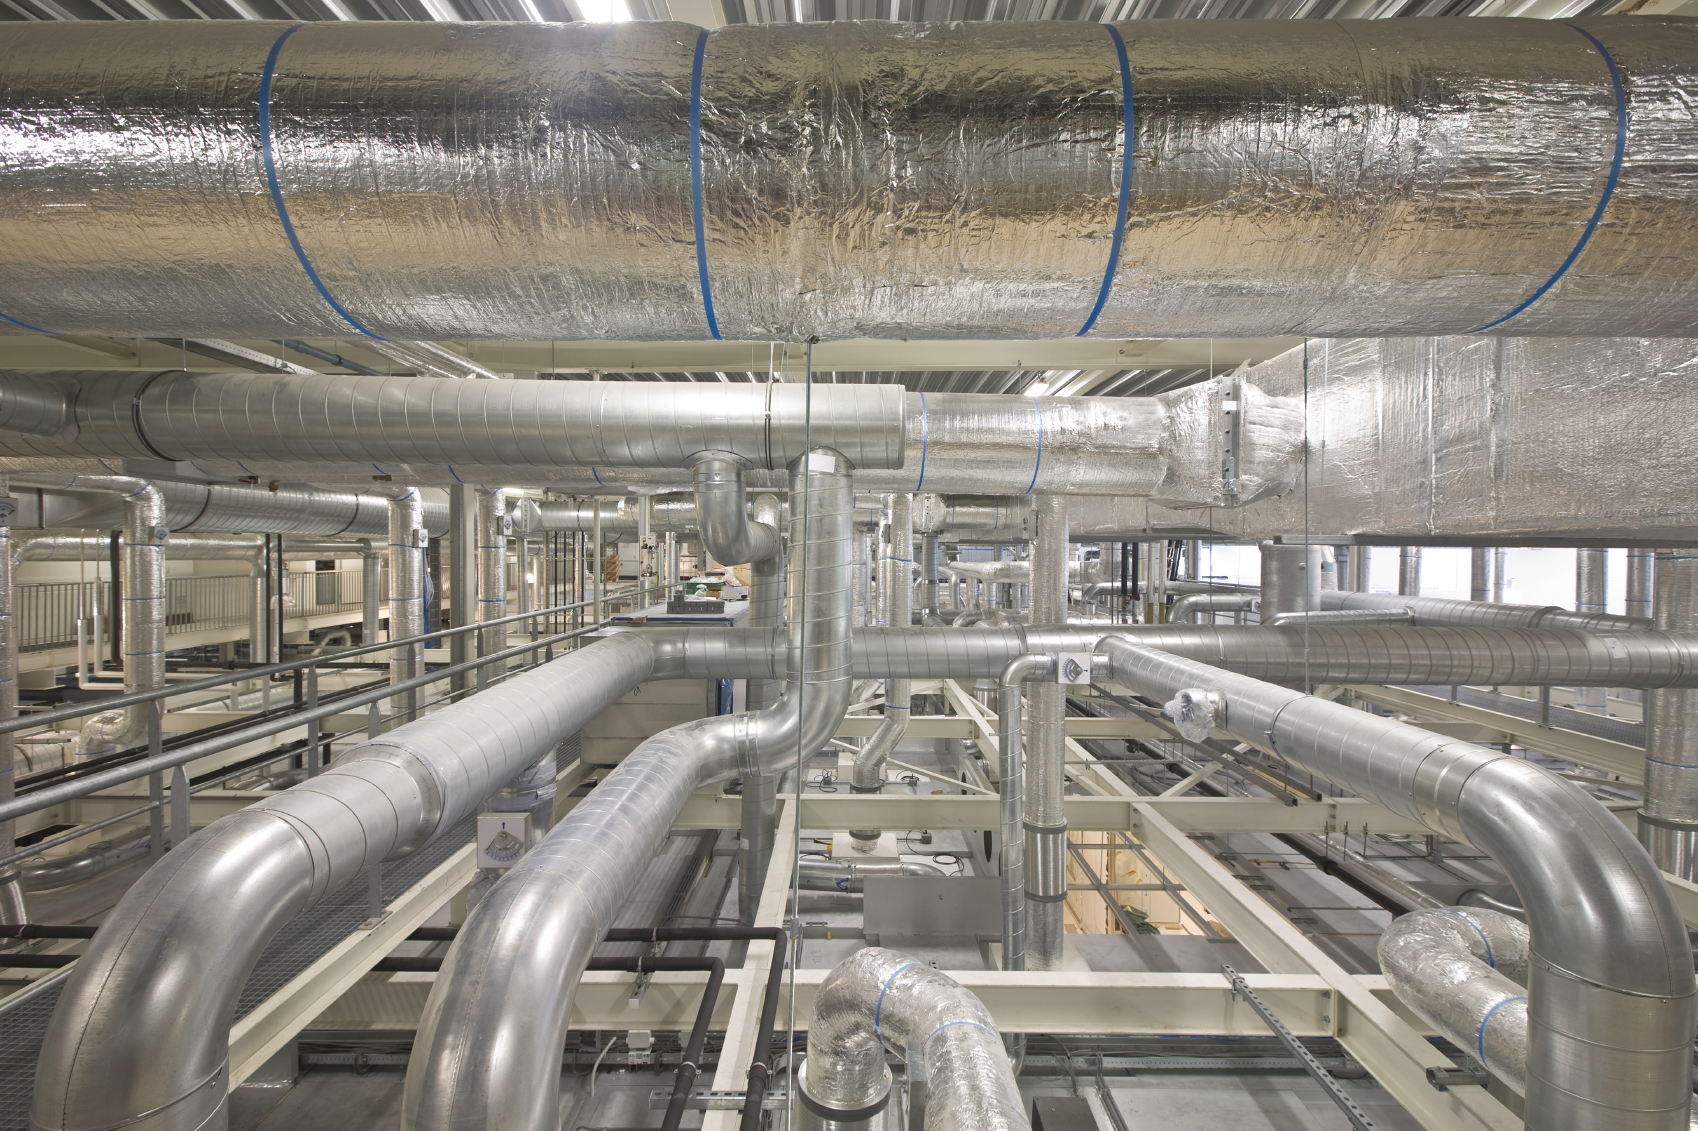 Industrial Ventilation Ductwork : Sound and thorough cleanair uk ductwork inspection